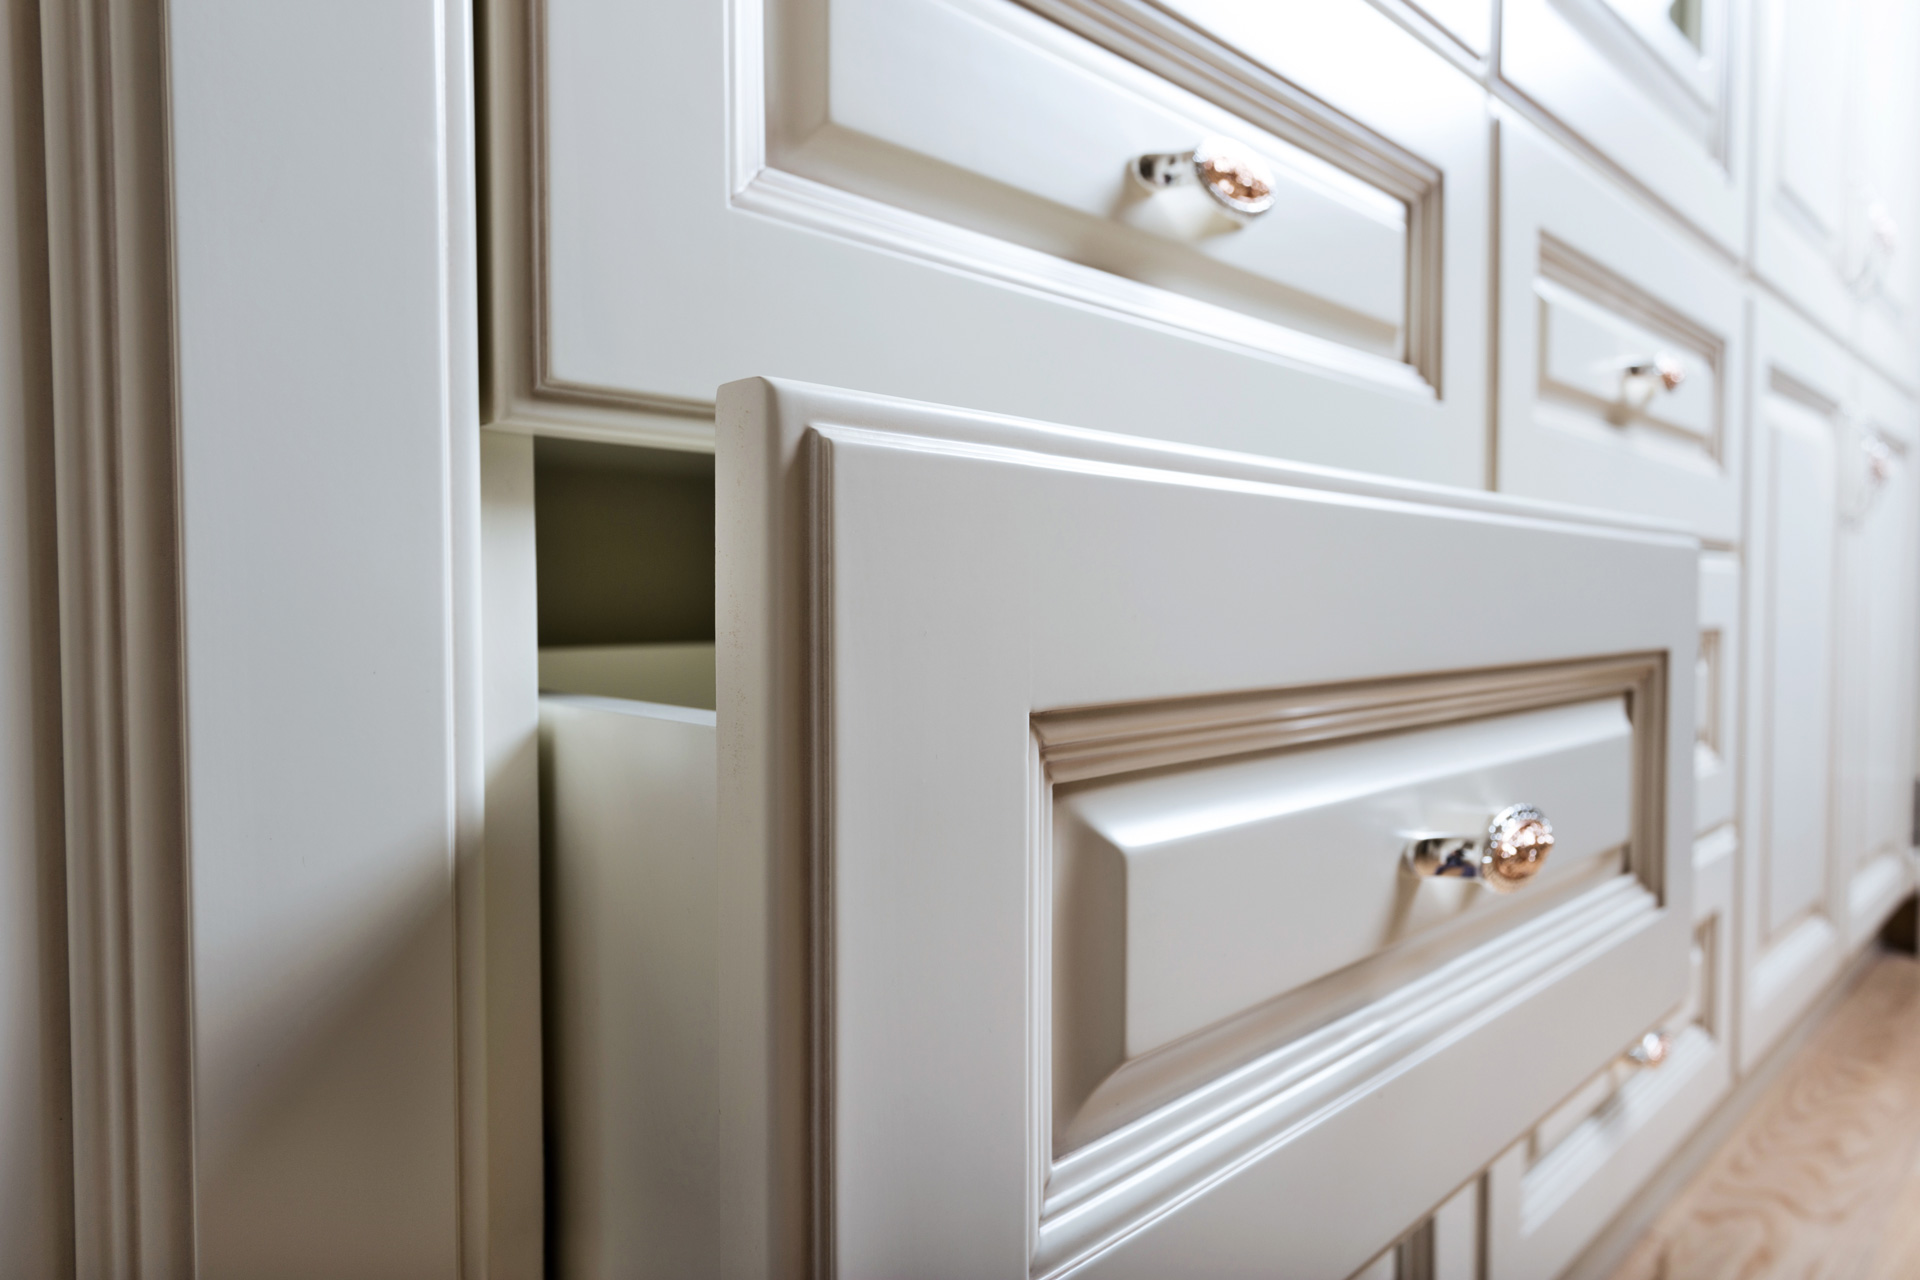 Quality-of-cabinets-CabinetCorp